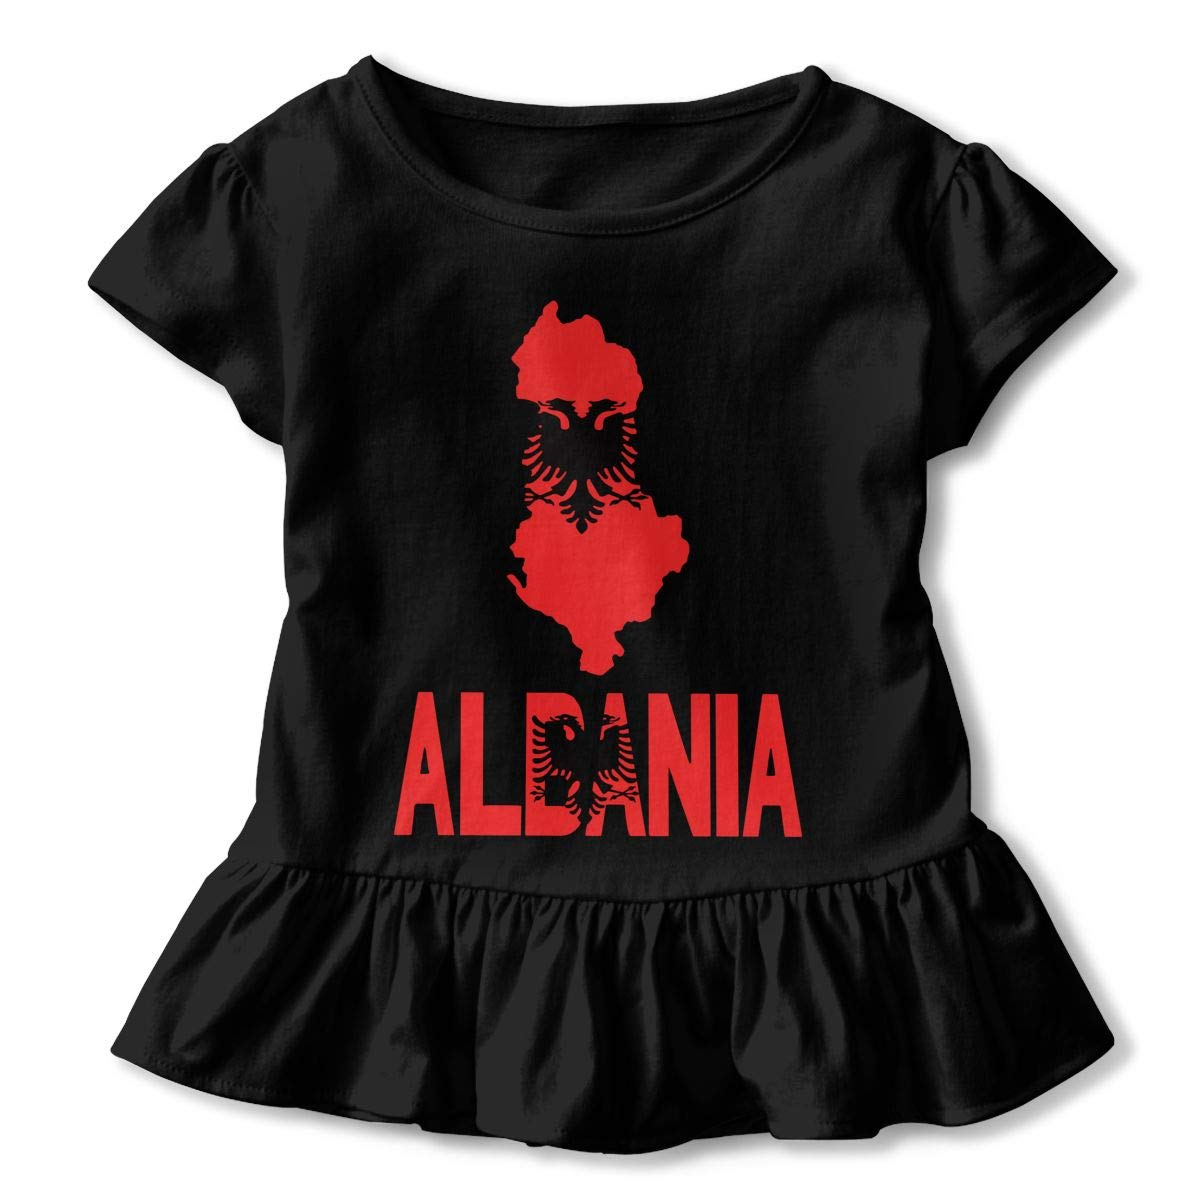 HYBDX9T Little Girls Albania Map Flag and Text Funny Short Sleeve Cotton T Shirts Basic Tops Tee Clothes